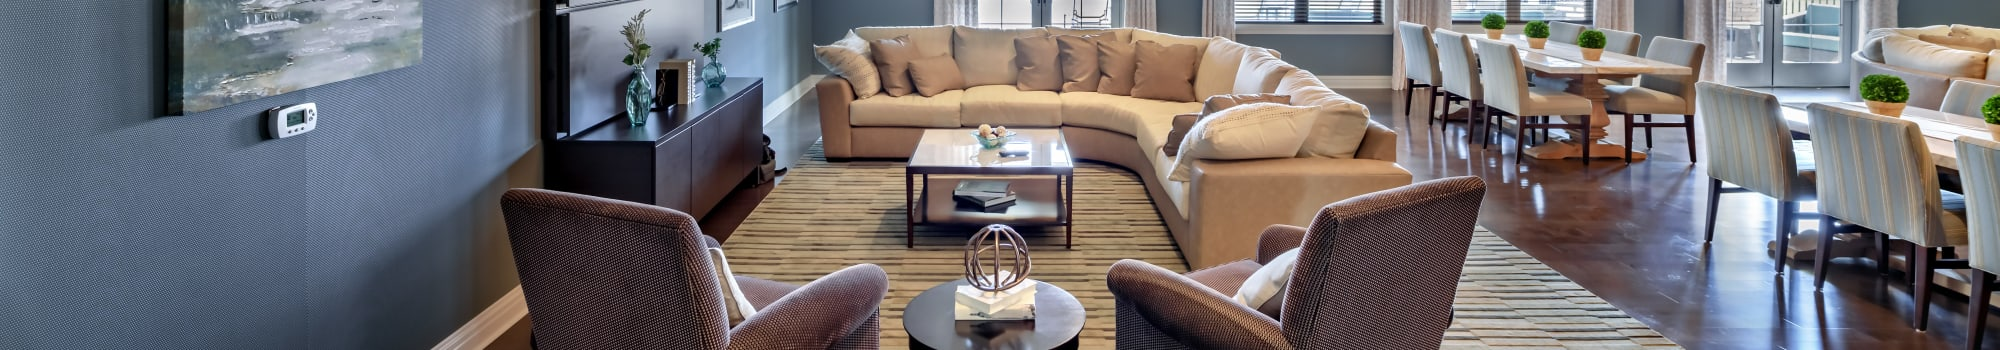 Schedule your Rochester Village Apartments at Park Place today